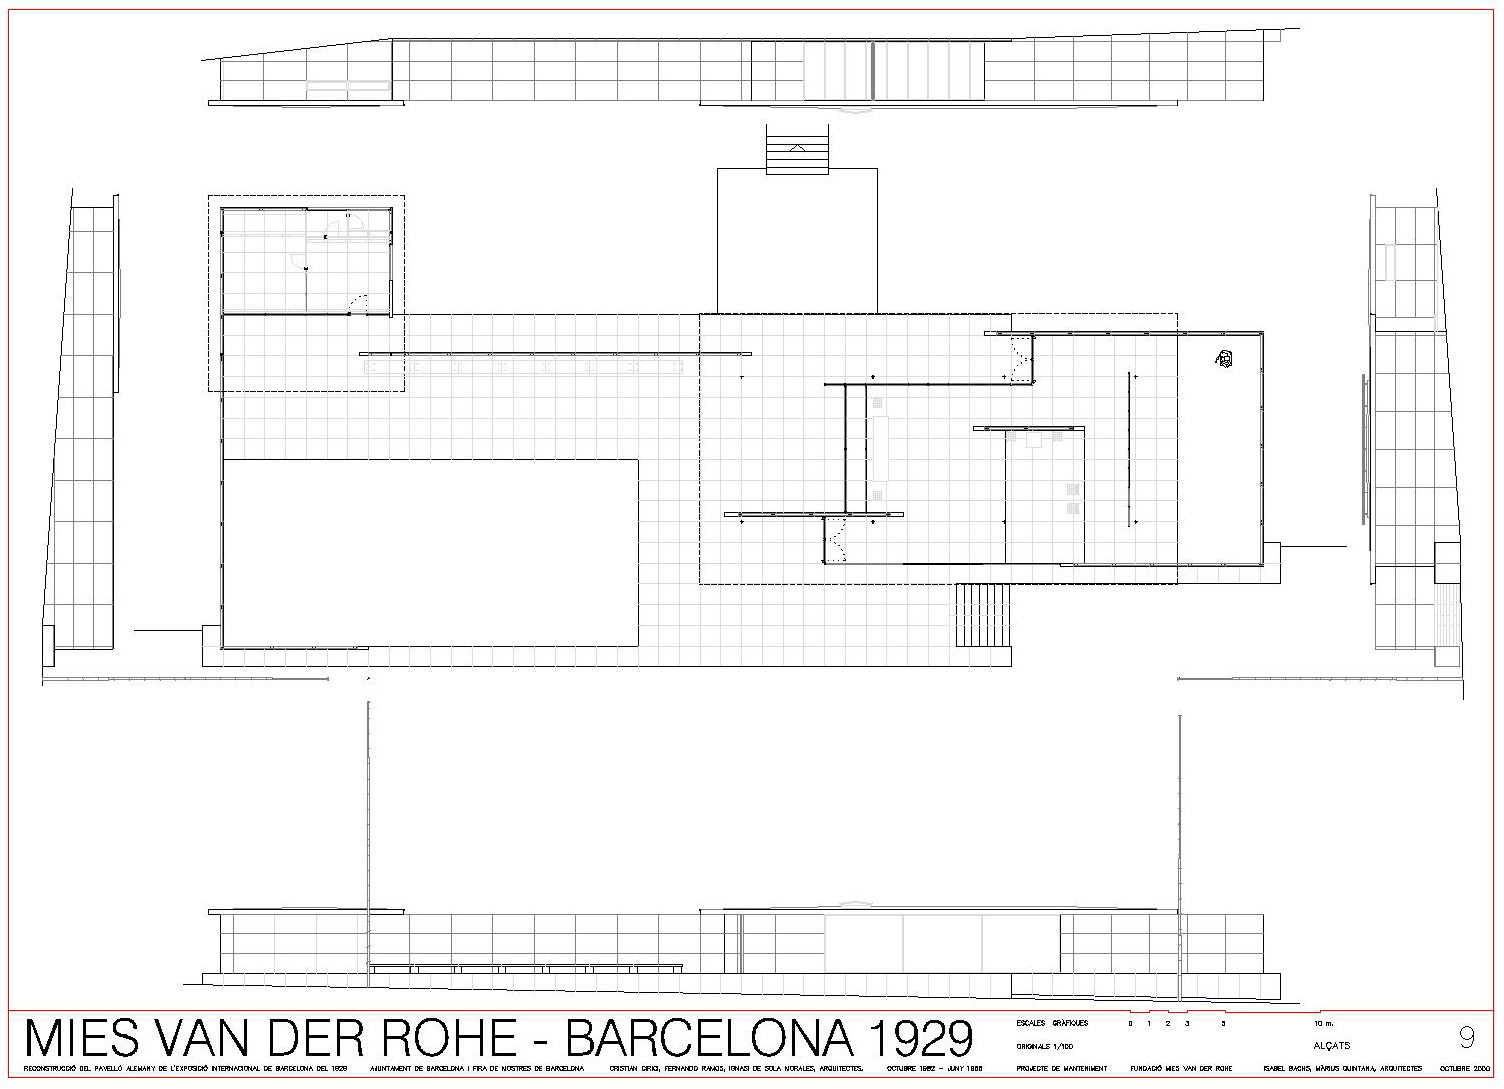 Barcelona Pavillon Modell bauen (Studium Zukunft Architektur) - Esherick House Floor Plan